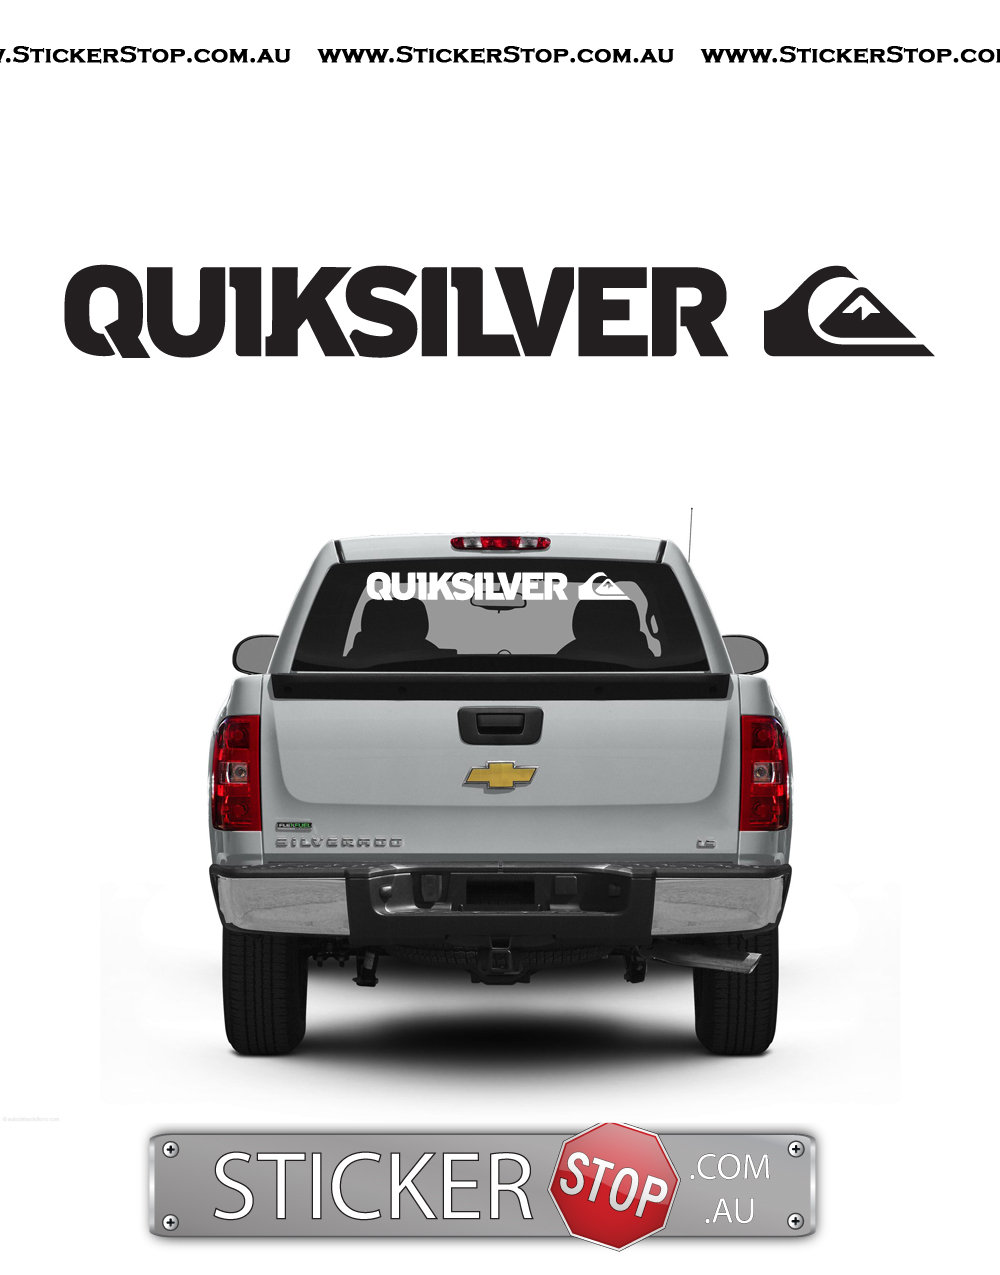 Quiksilver (Long) Sticker